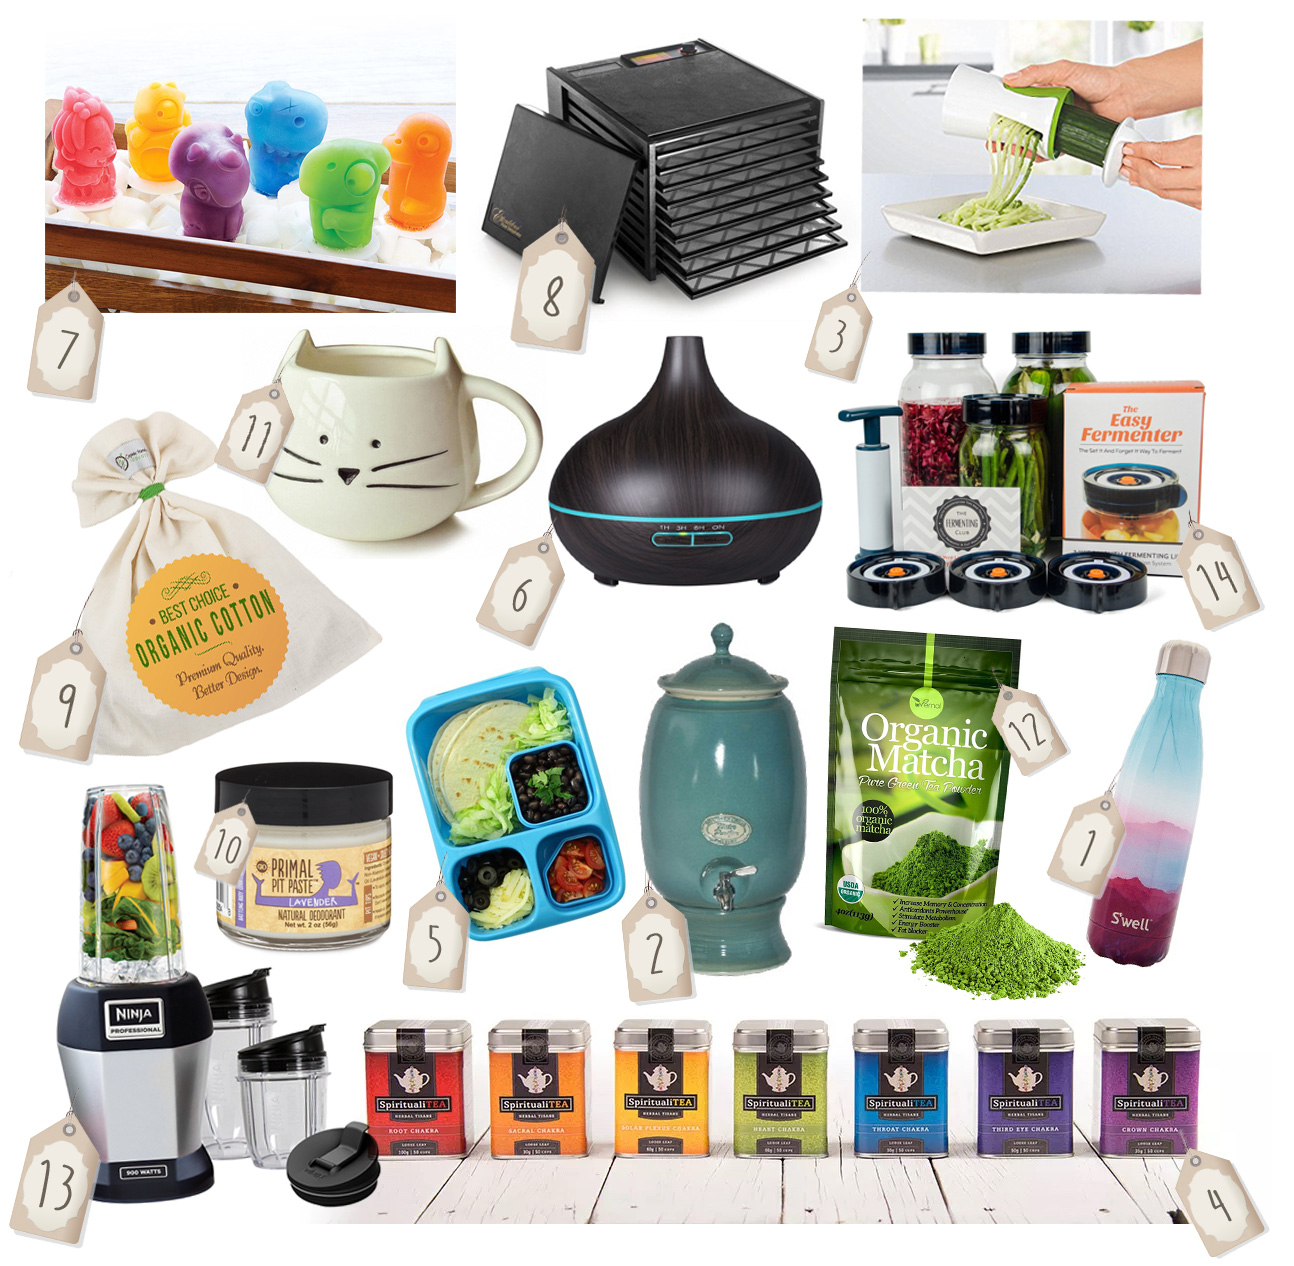 25 Christmas Gift Ideas! - Delightful Vegans